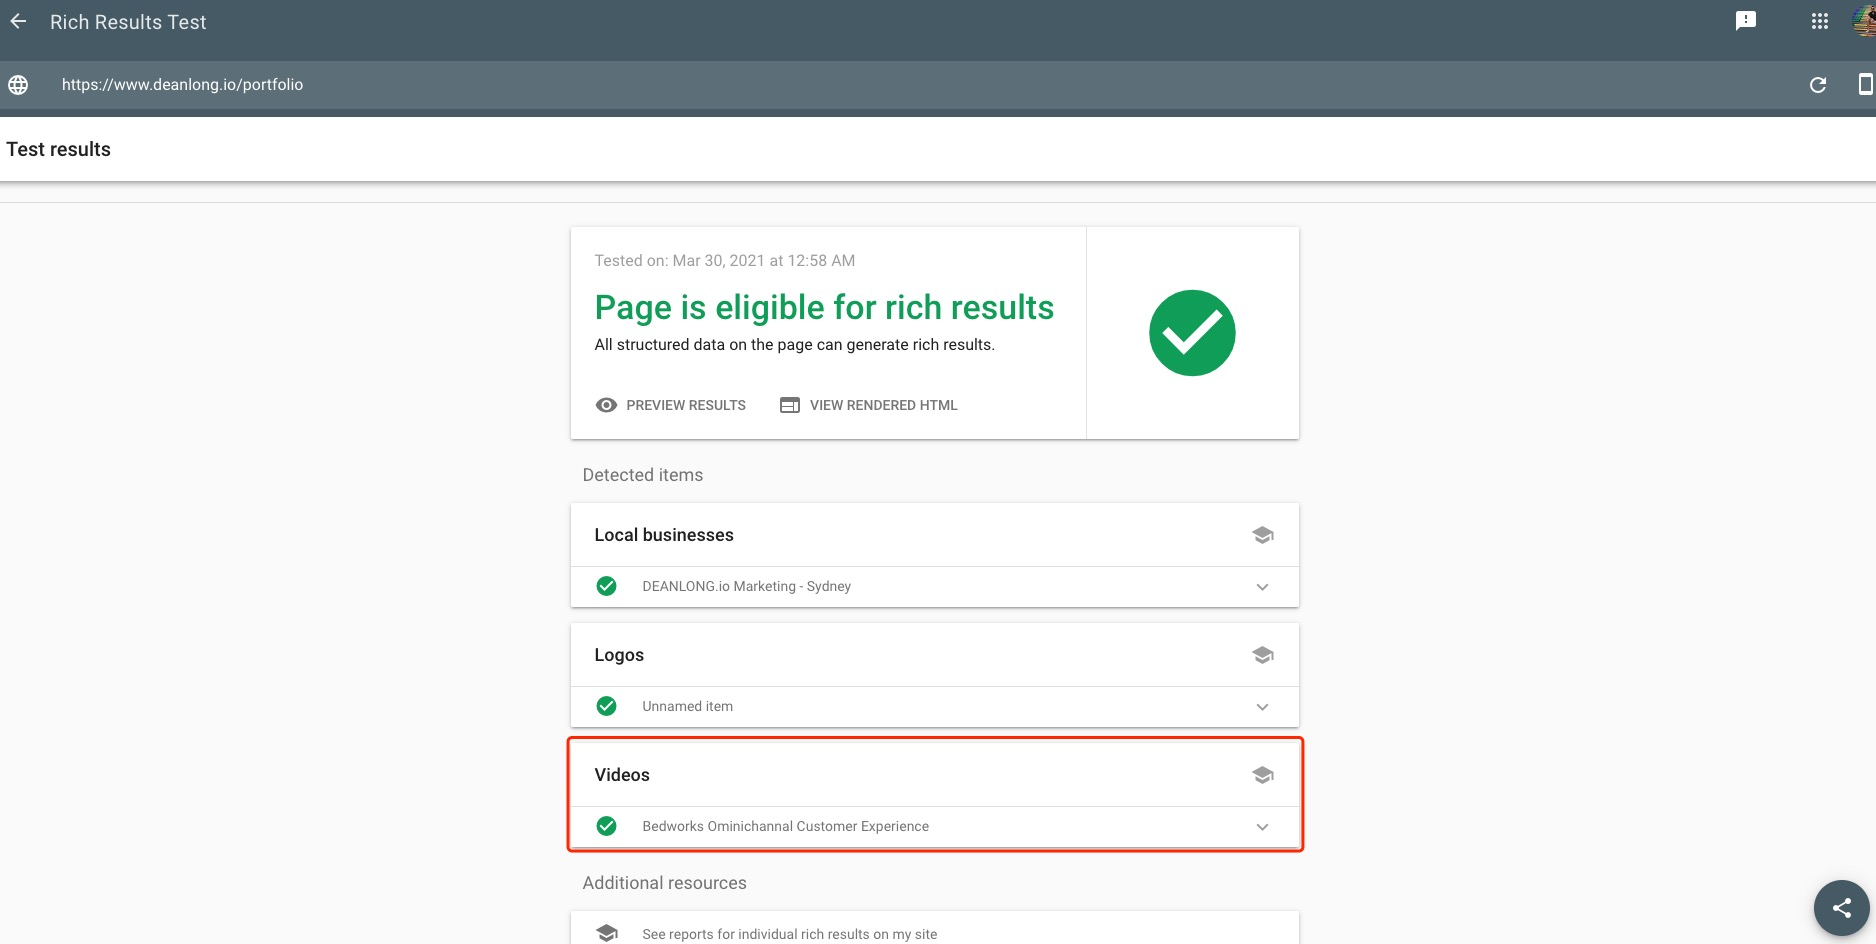 Apply VideoObject Structured Data To My Video Content Page - Rich Results Test | DEANLONG.io